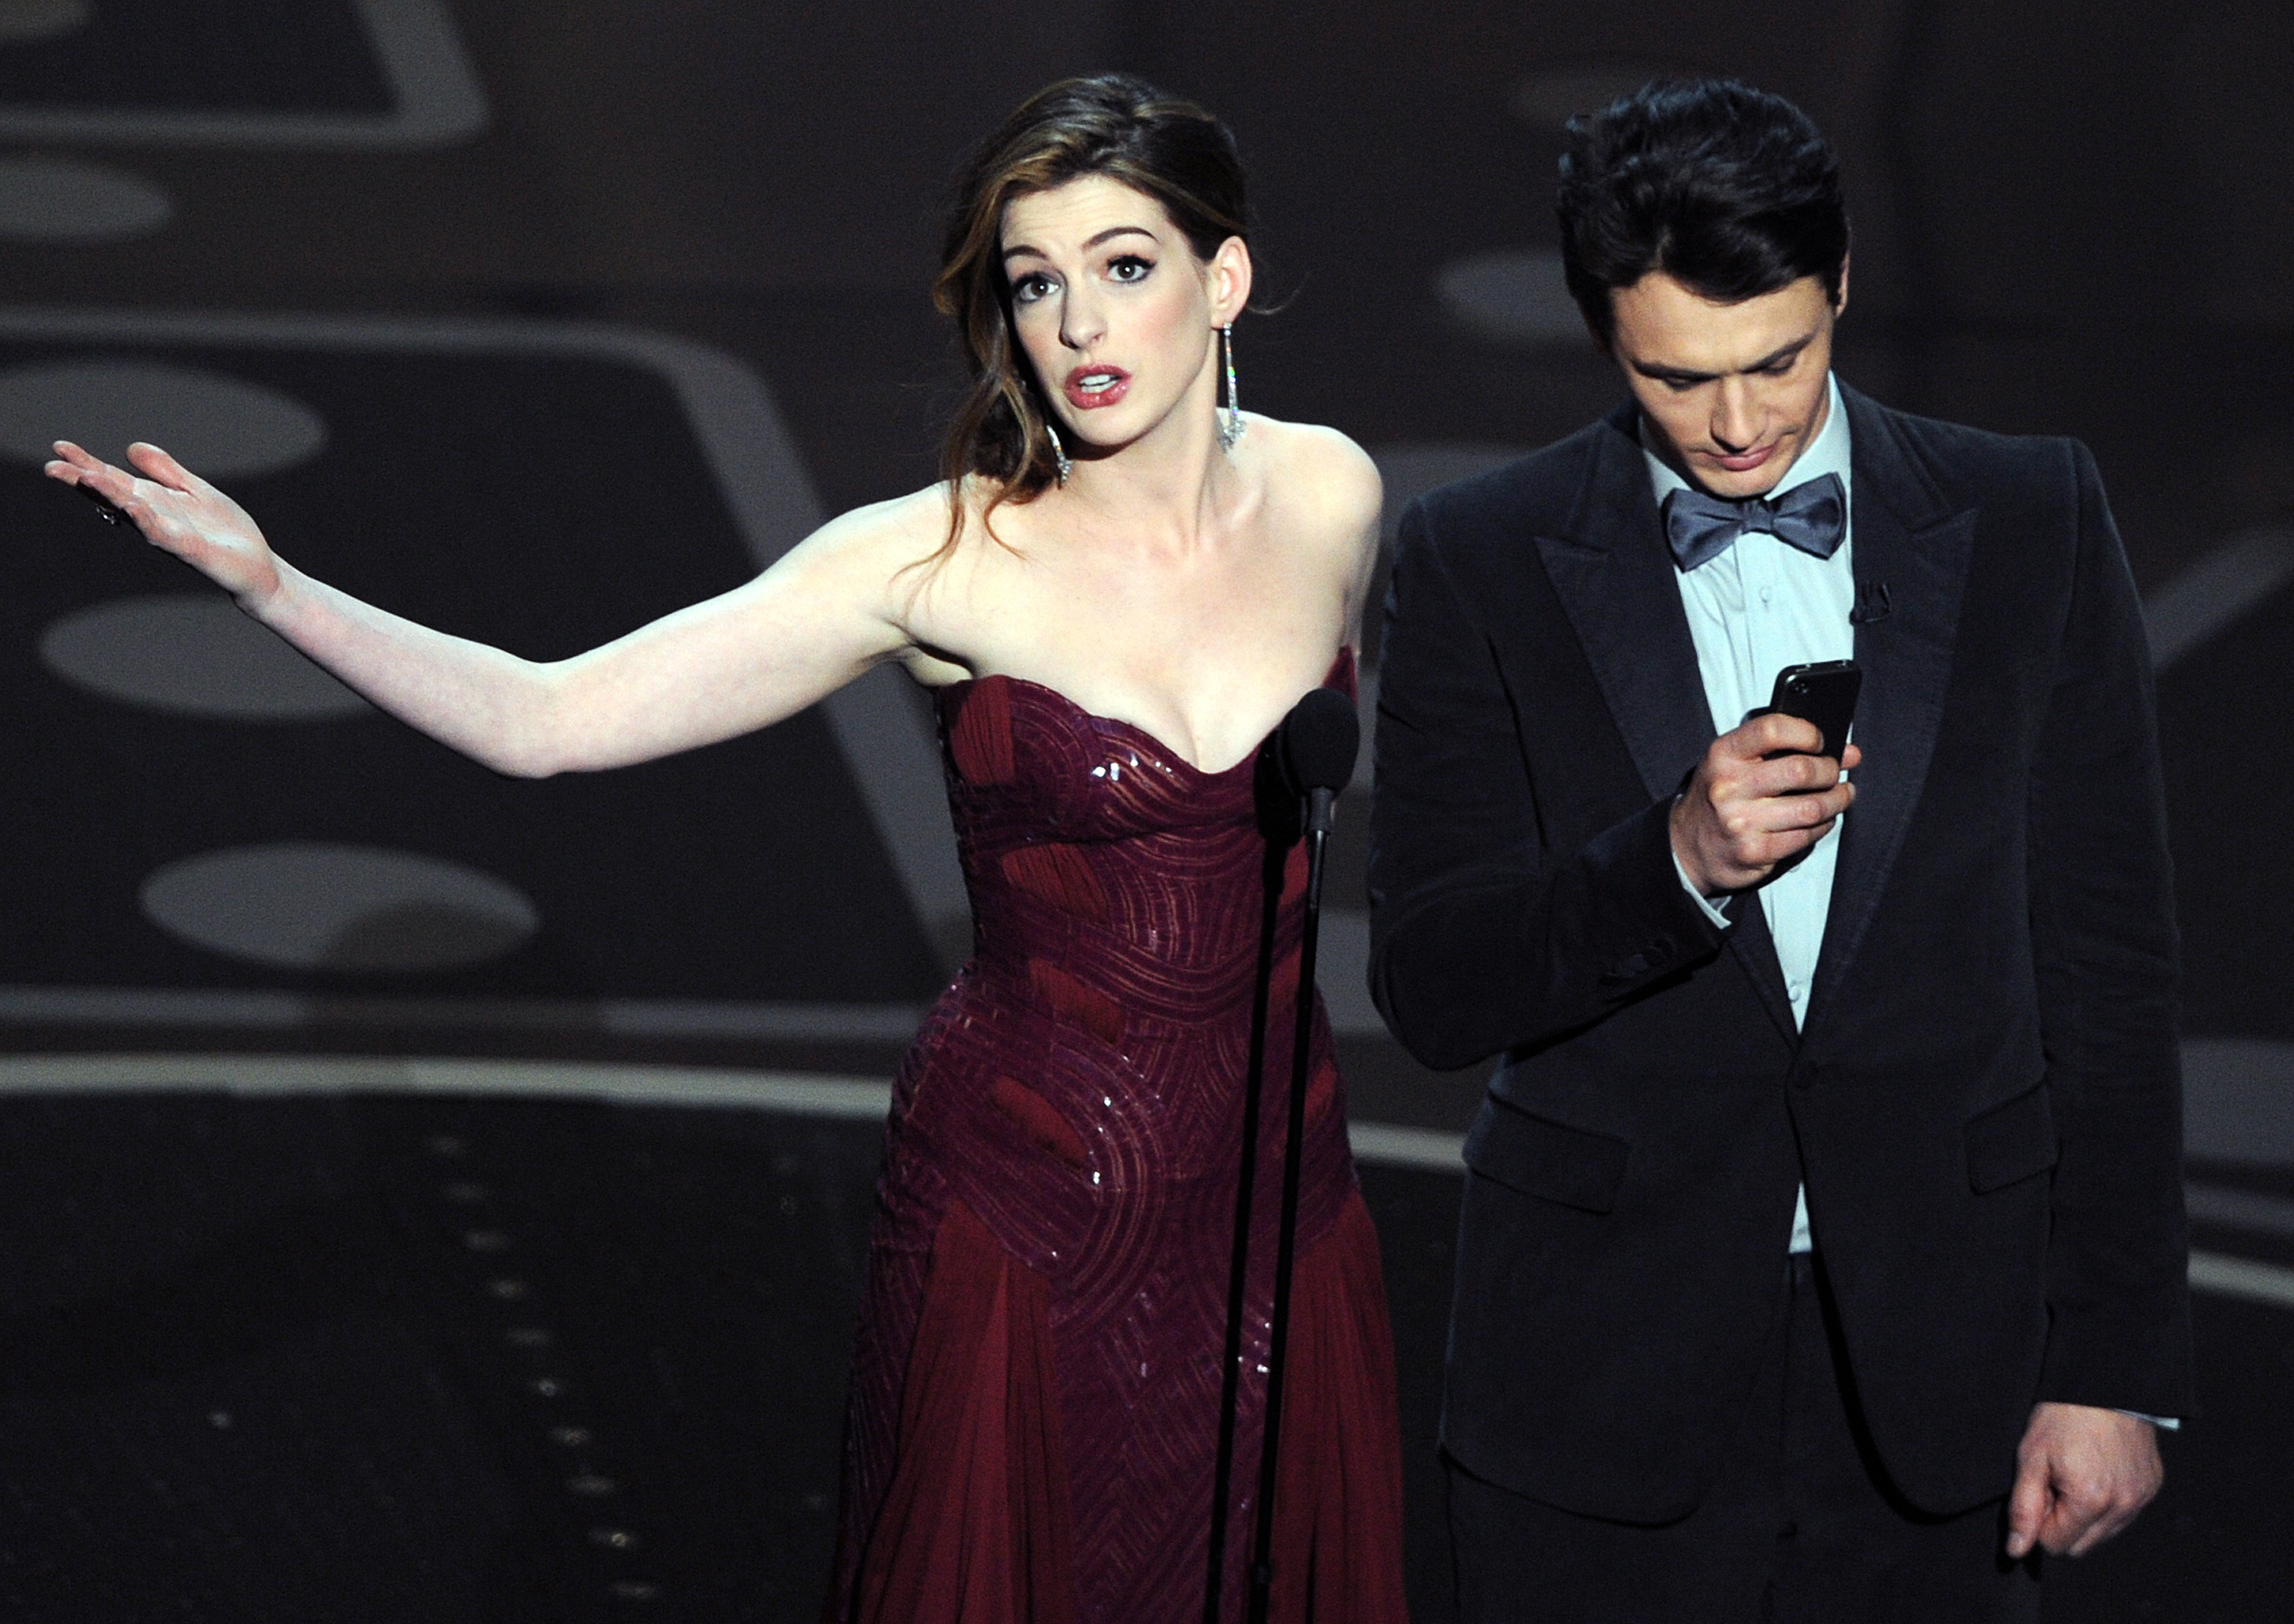 Anne Hathaway and James Franco onstage at the Academy Awards.